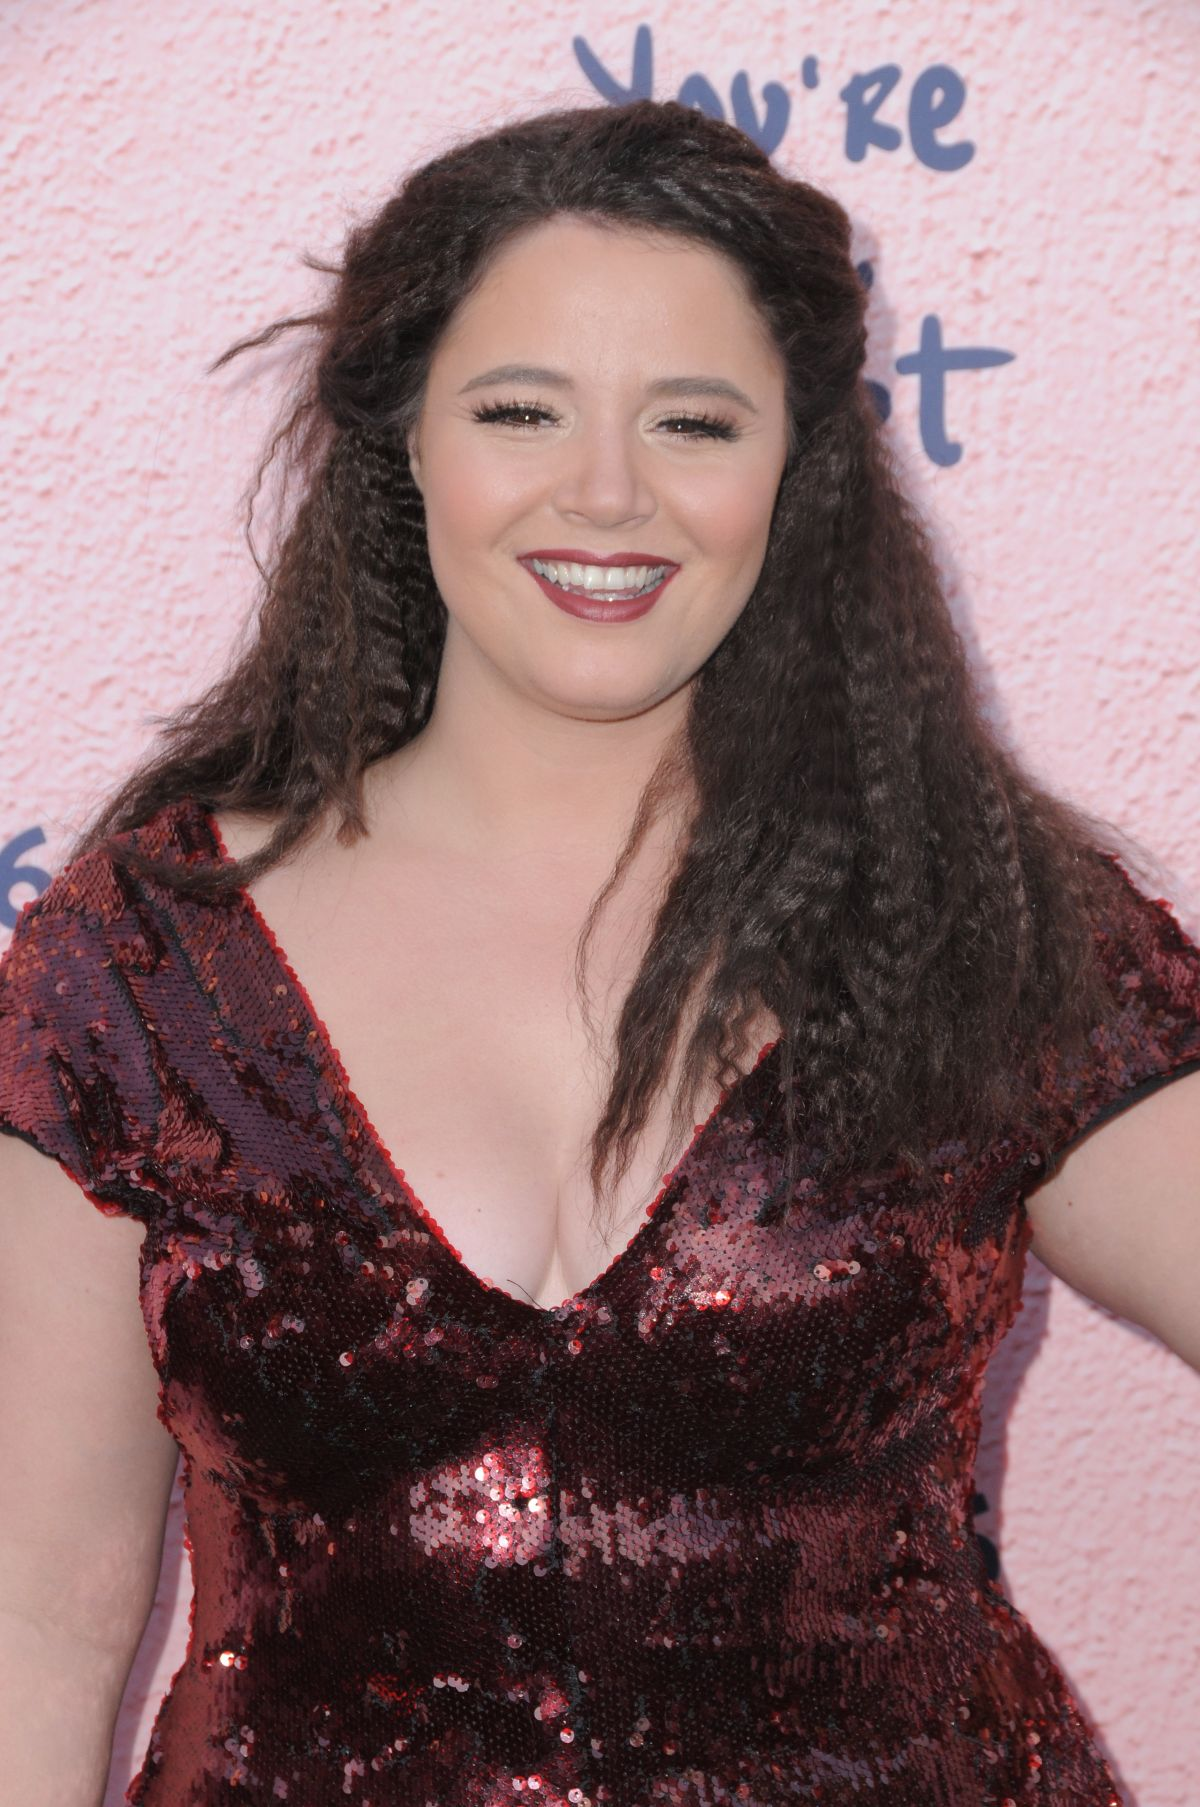 The Worst Makeup Fails Of All Time: AYA CASH And KETHER DONOHUE At You're The Worst Premiere